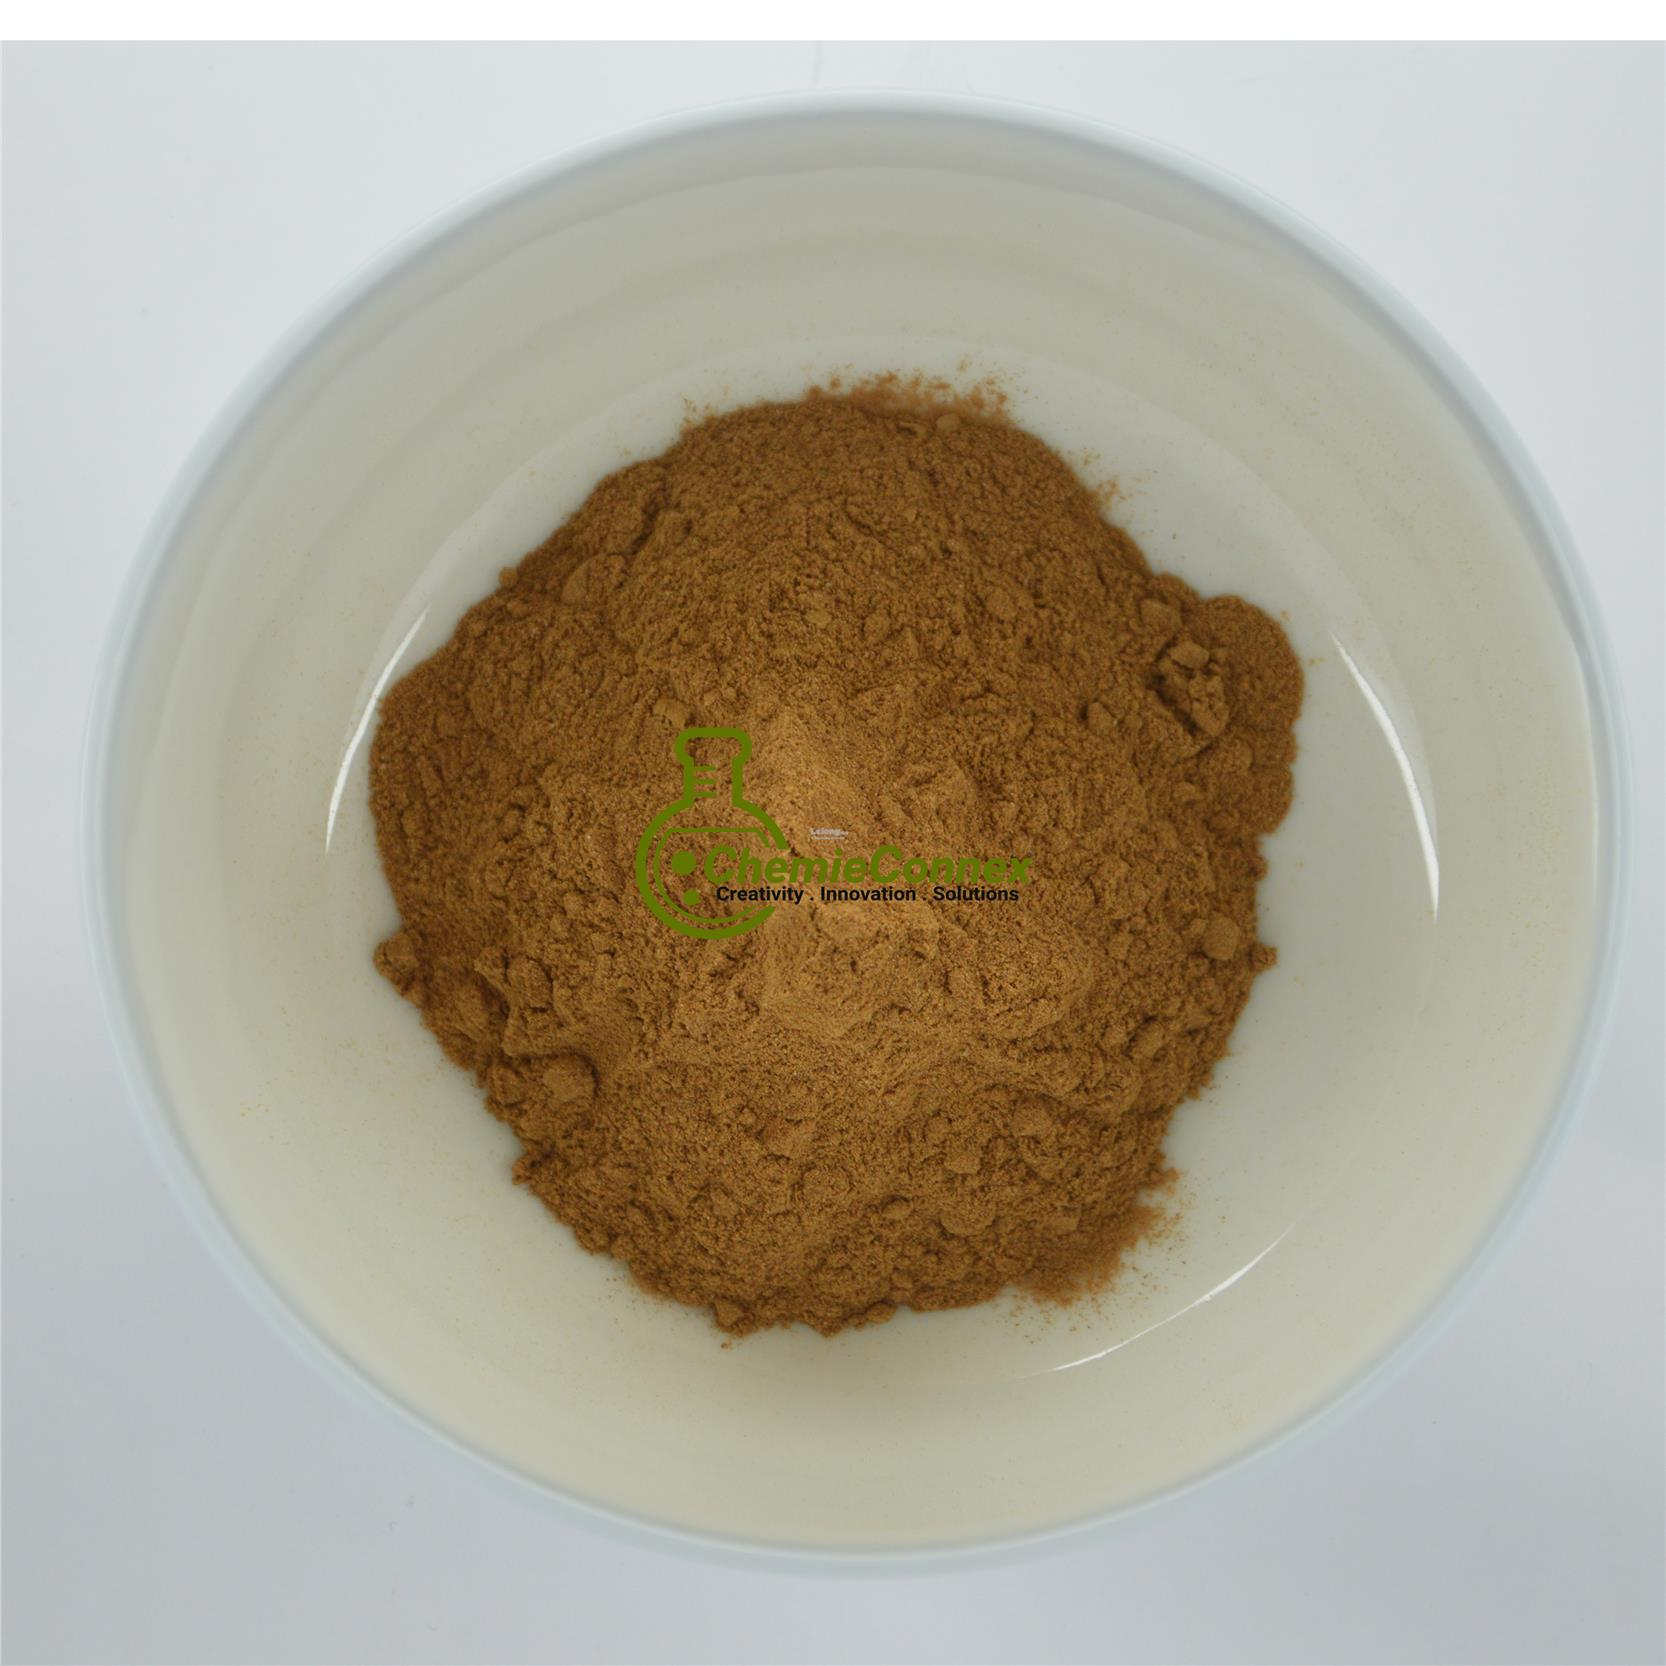 Rose Hip Powder Extract 10g